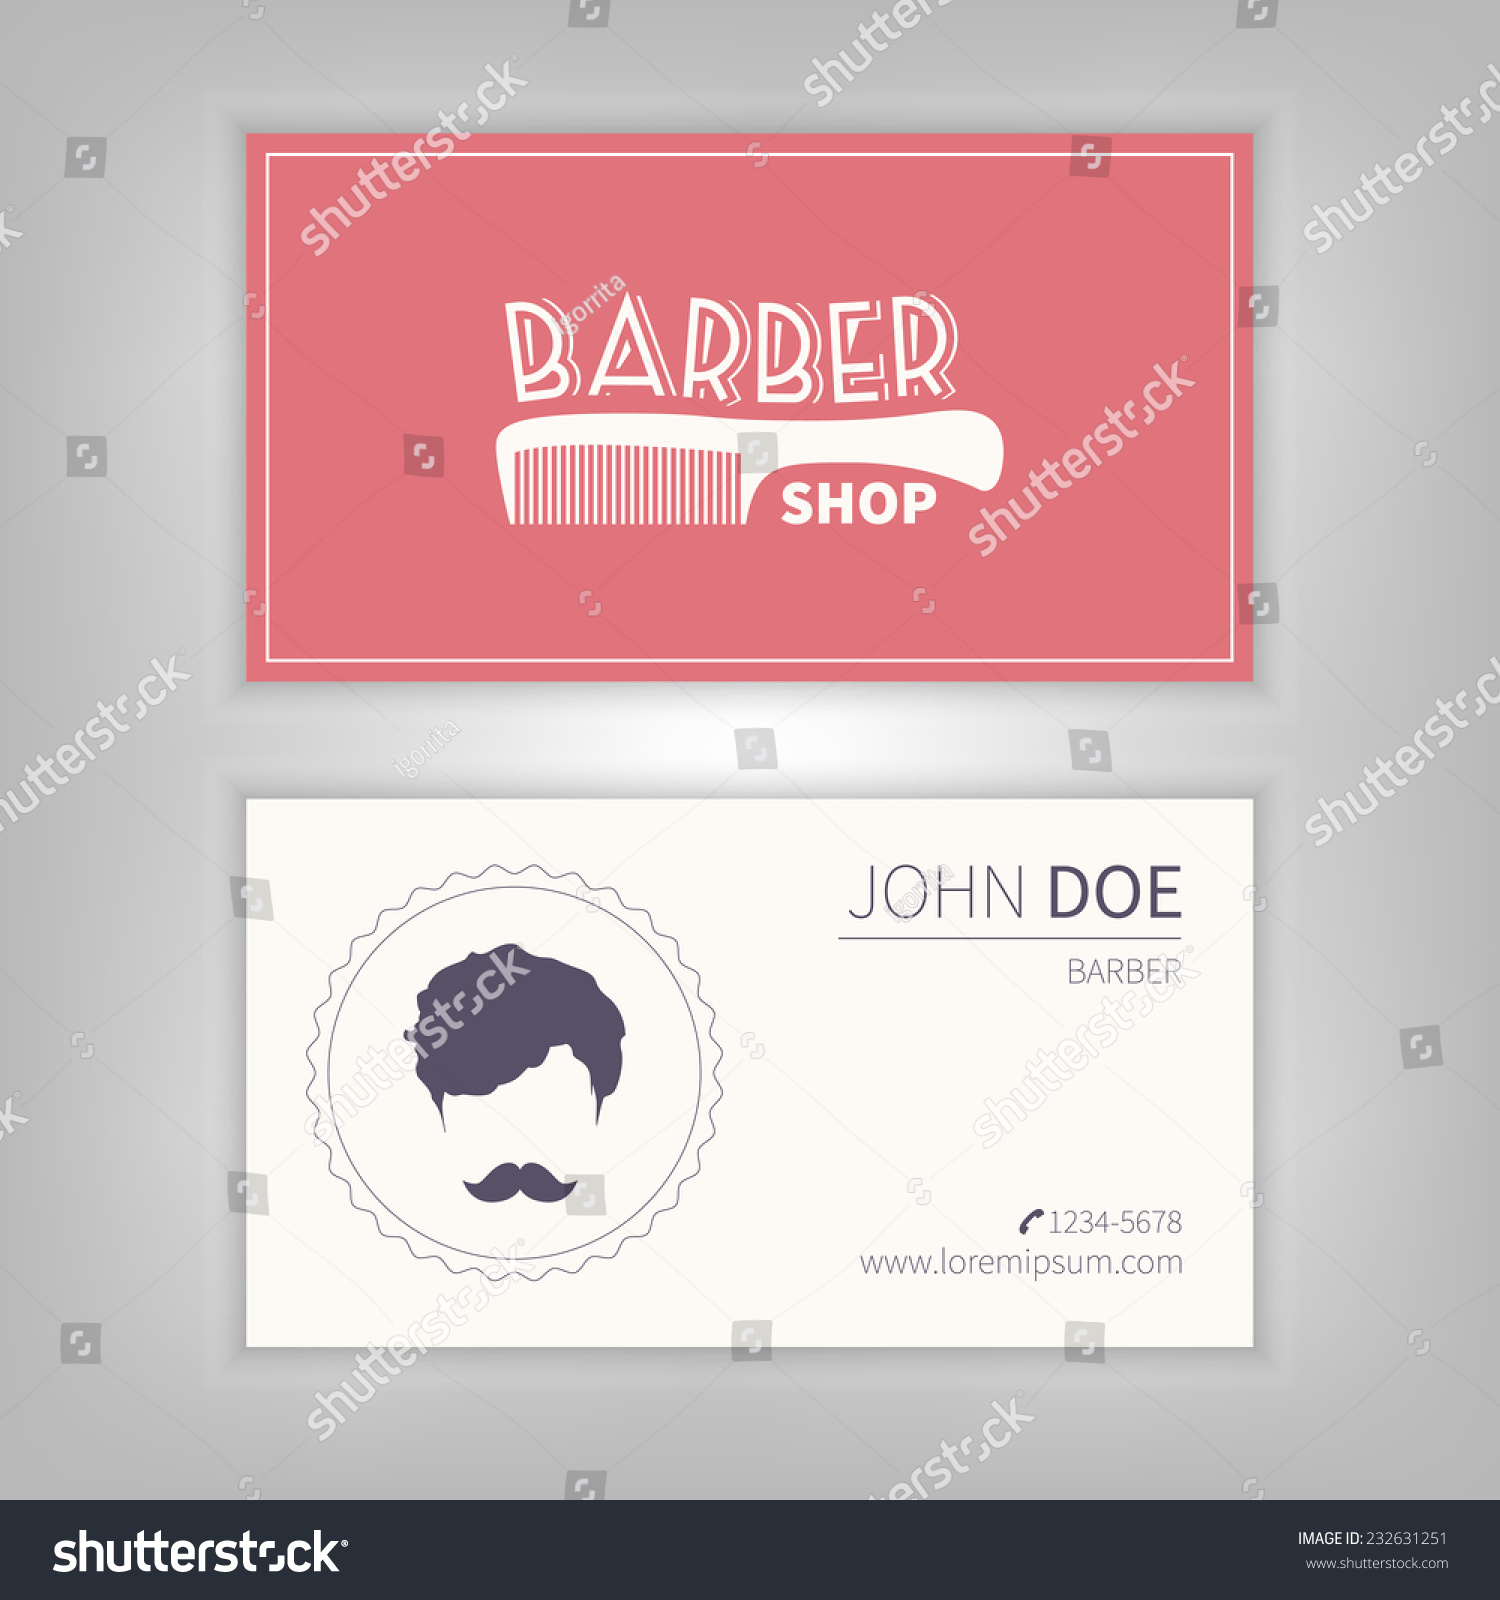 Beautiful pictures of barber shop business cards business cards barber shop business card design template stock vector flashek Choice Image